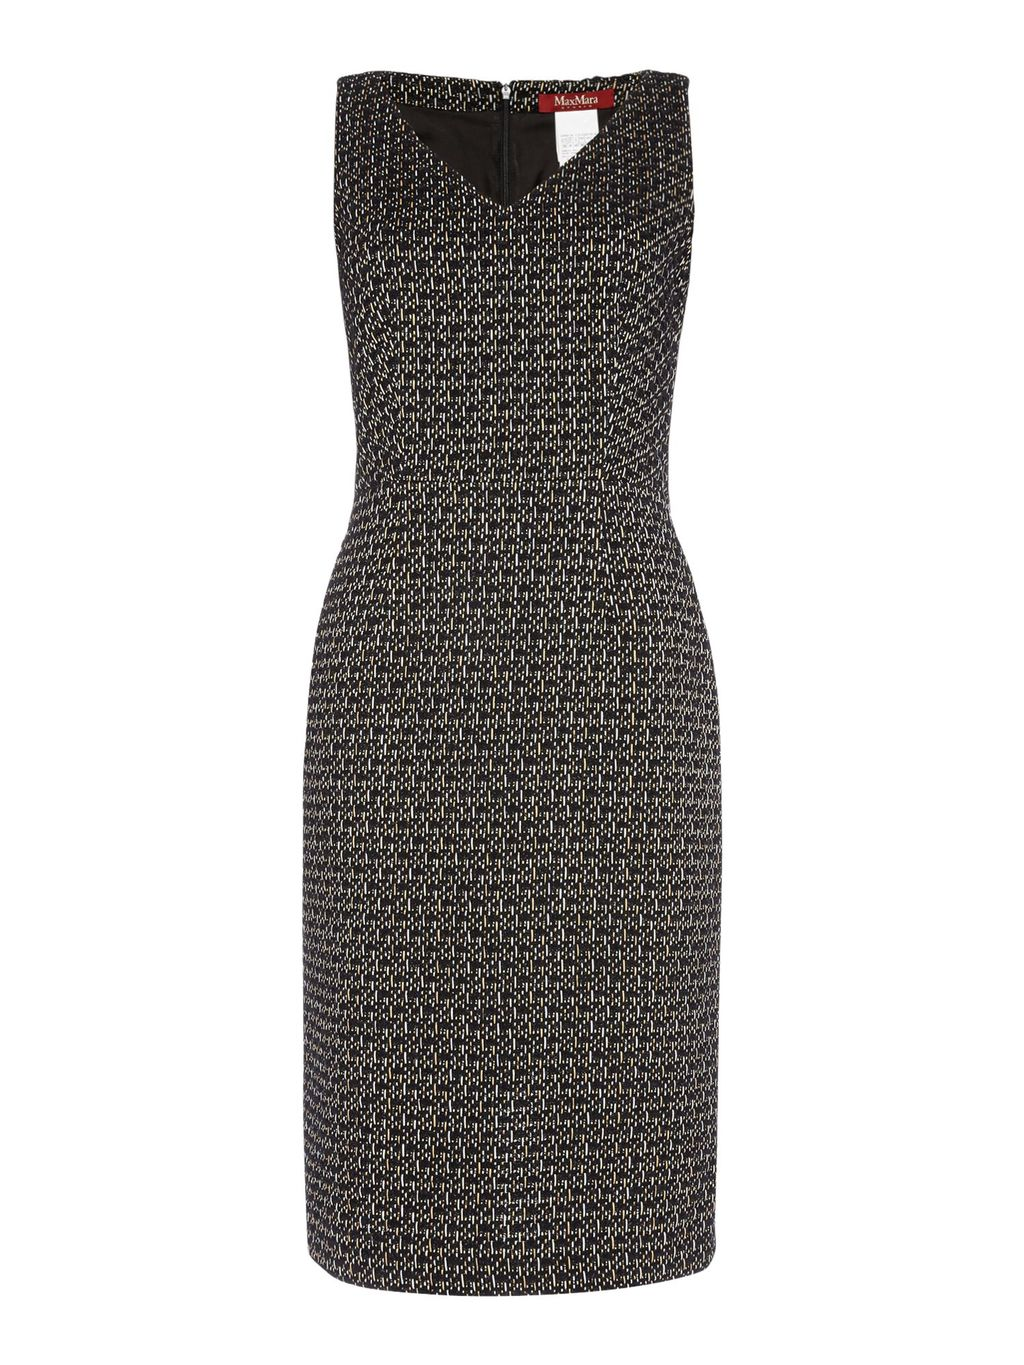 Eritea Sleeveless Boucle V Neck Dress, Black - style: shift; neckline: v-neck; fit: tailored/fitted; sleeve style: sleeveless; predominant colour: charcoal; occasions: evening; length: just above the knee; fibres: cotton - mix; sleeve length: sleeveless; pattern type: fabric; pattern: patterned/print; texture group: other - light to midweight; season: s/s 2016